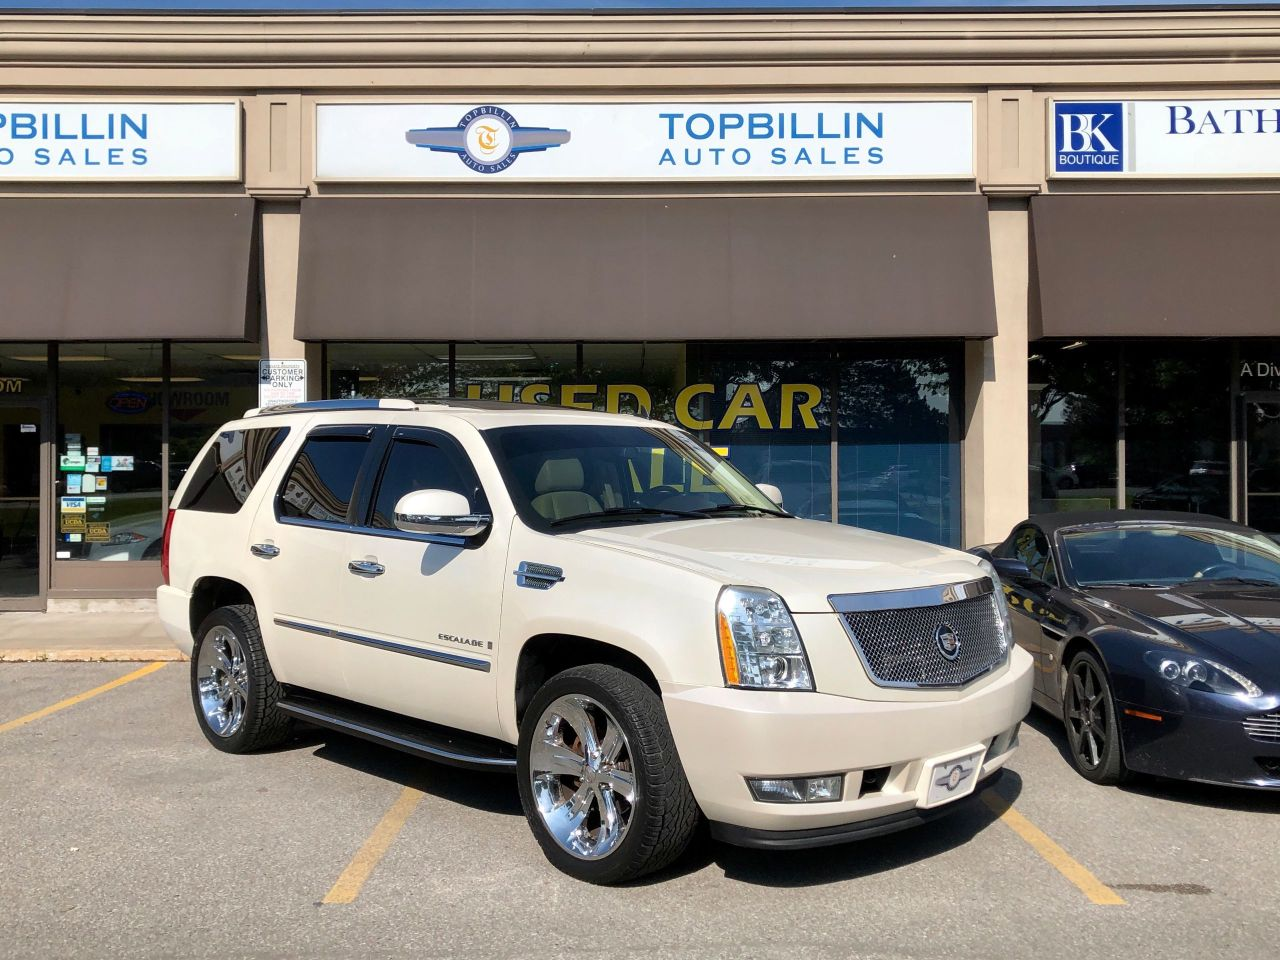 2007 Cadillac Escalade 22 Inch Wheels